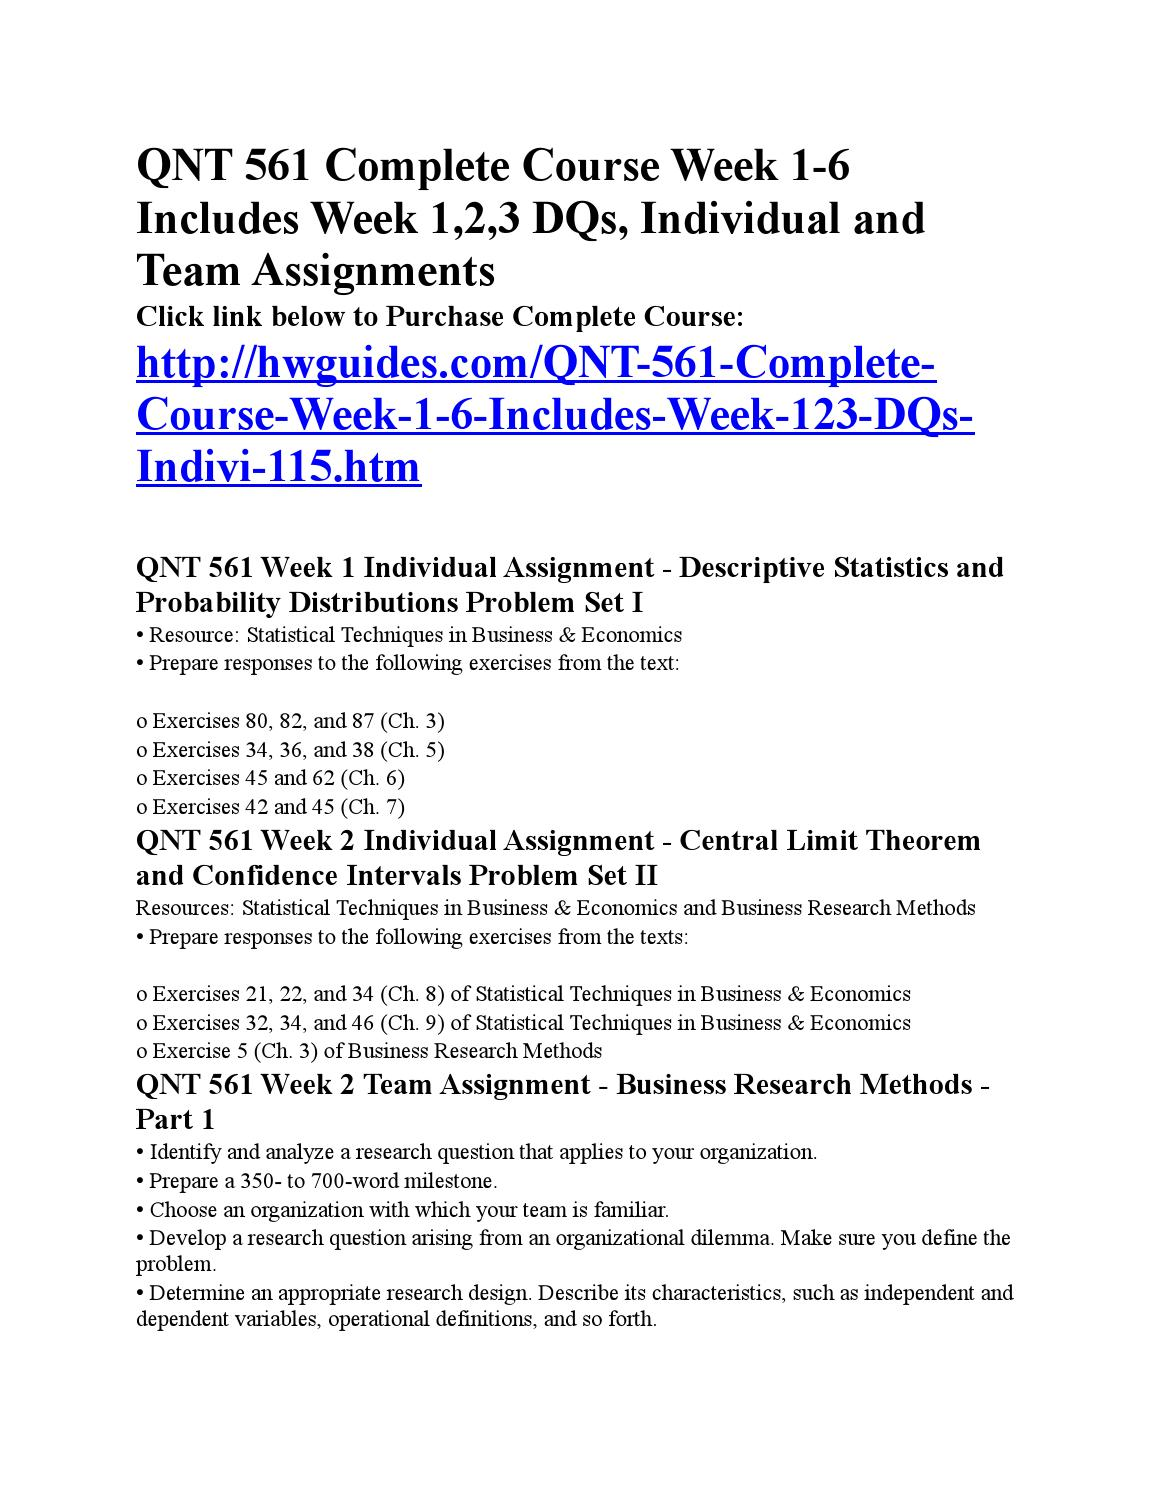 QNT 561 Week 1 Descriptive Statistics and Probabil...